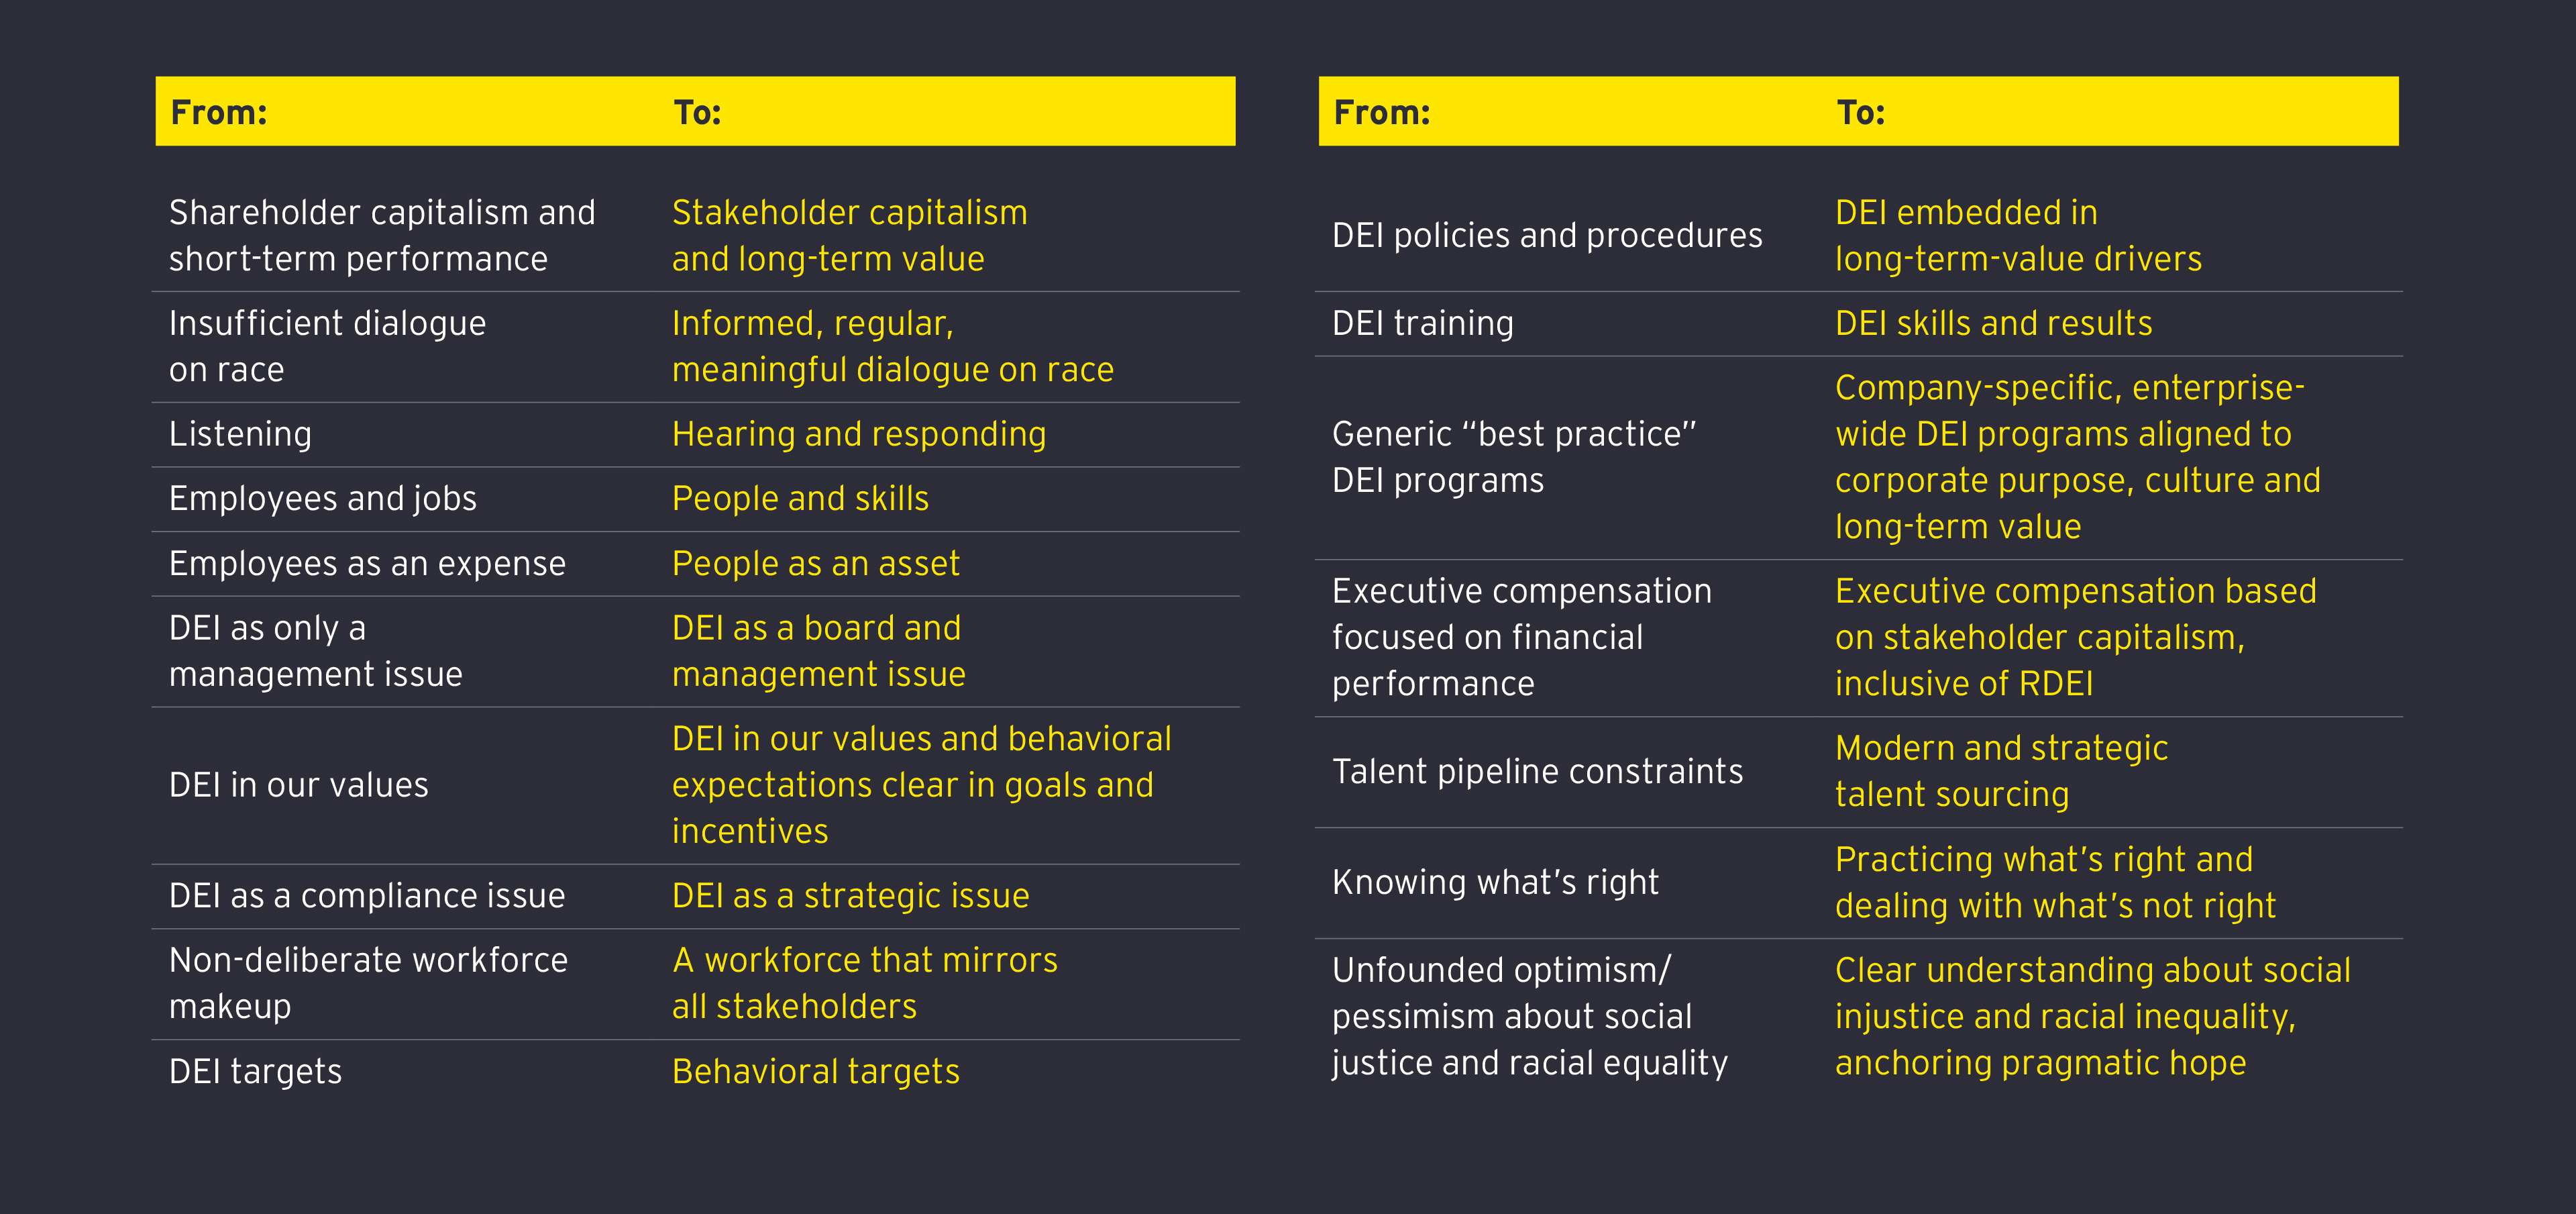 EY - Align strategy and culture to activate REDI